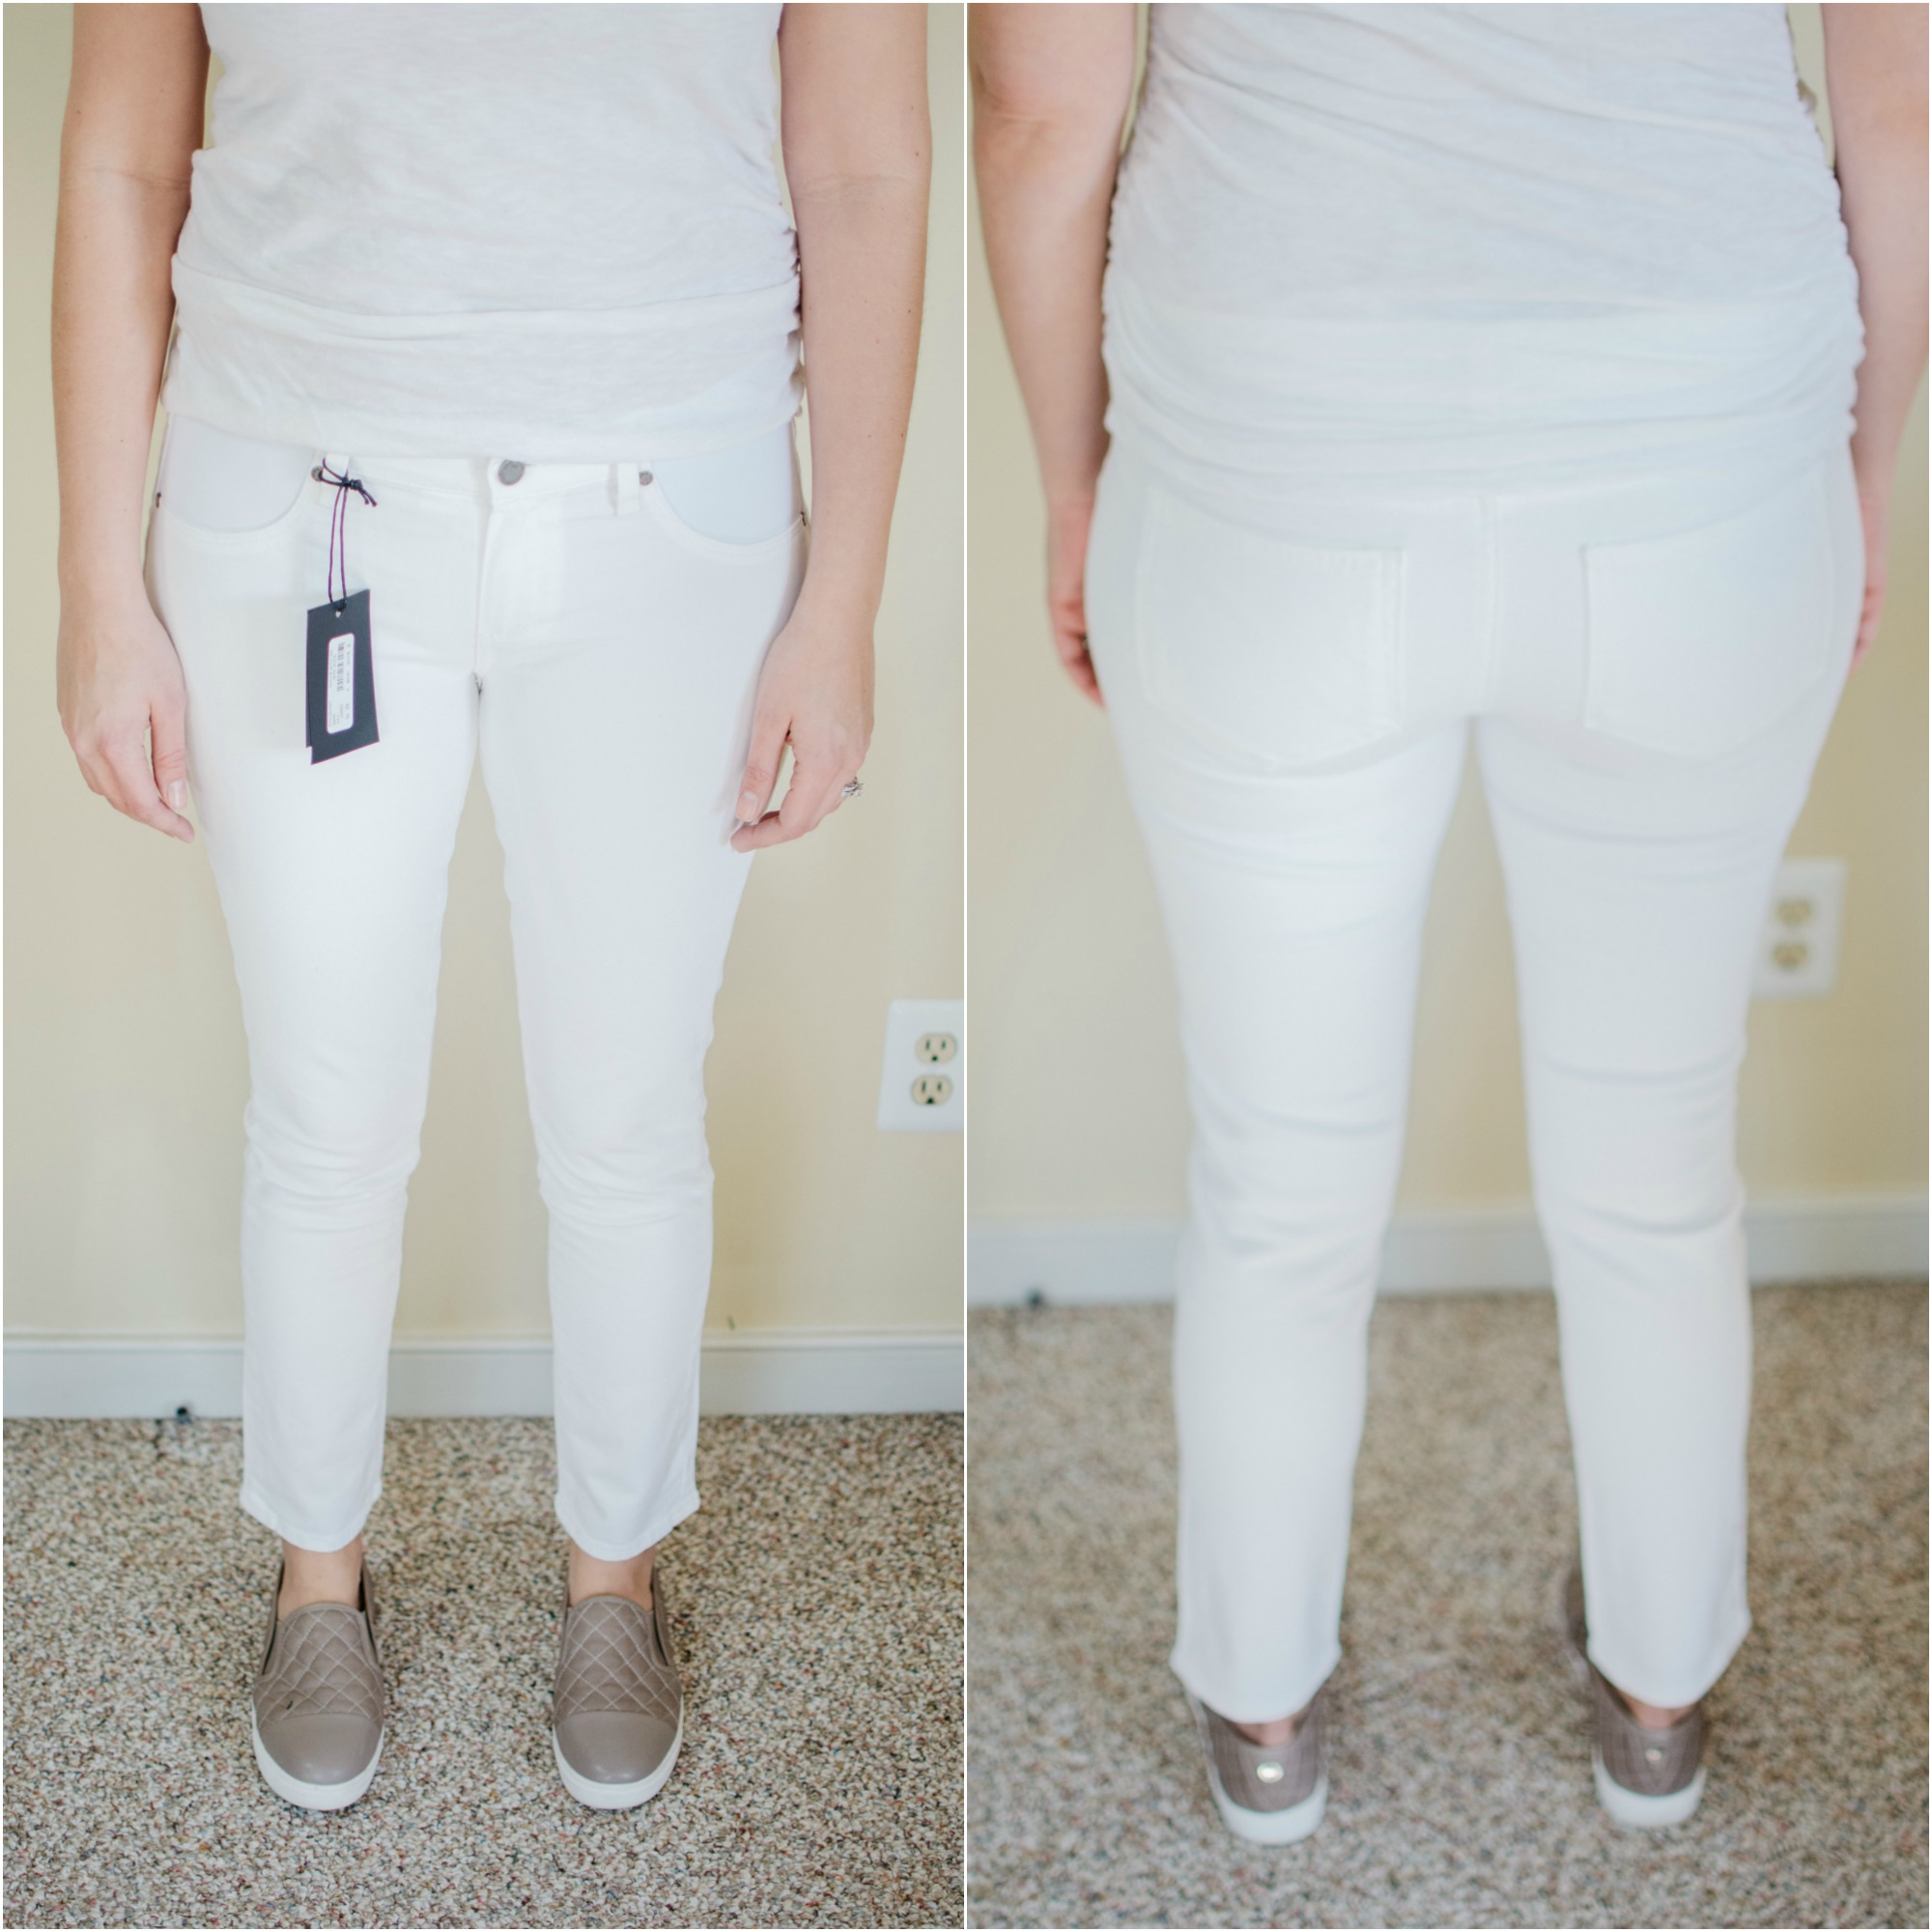 PAIGE designer maternity jeans - best designer maternity jeans review | See reviews of over 15 maternity jeans brands by clicking through to this post! | bylaurenm.com